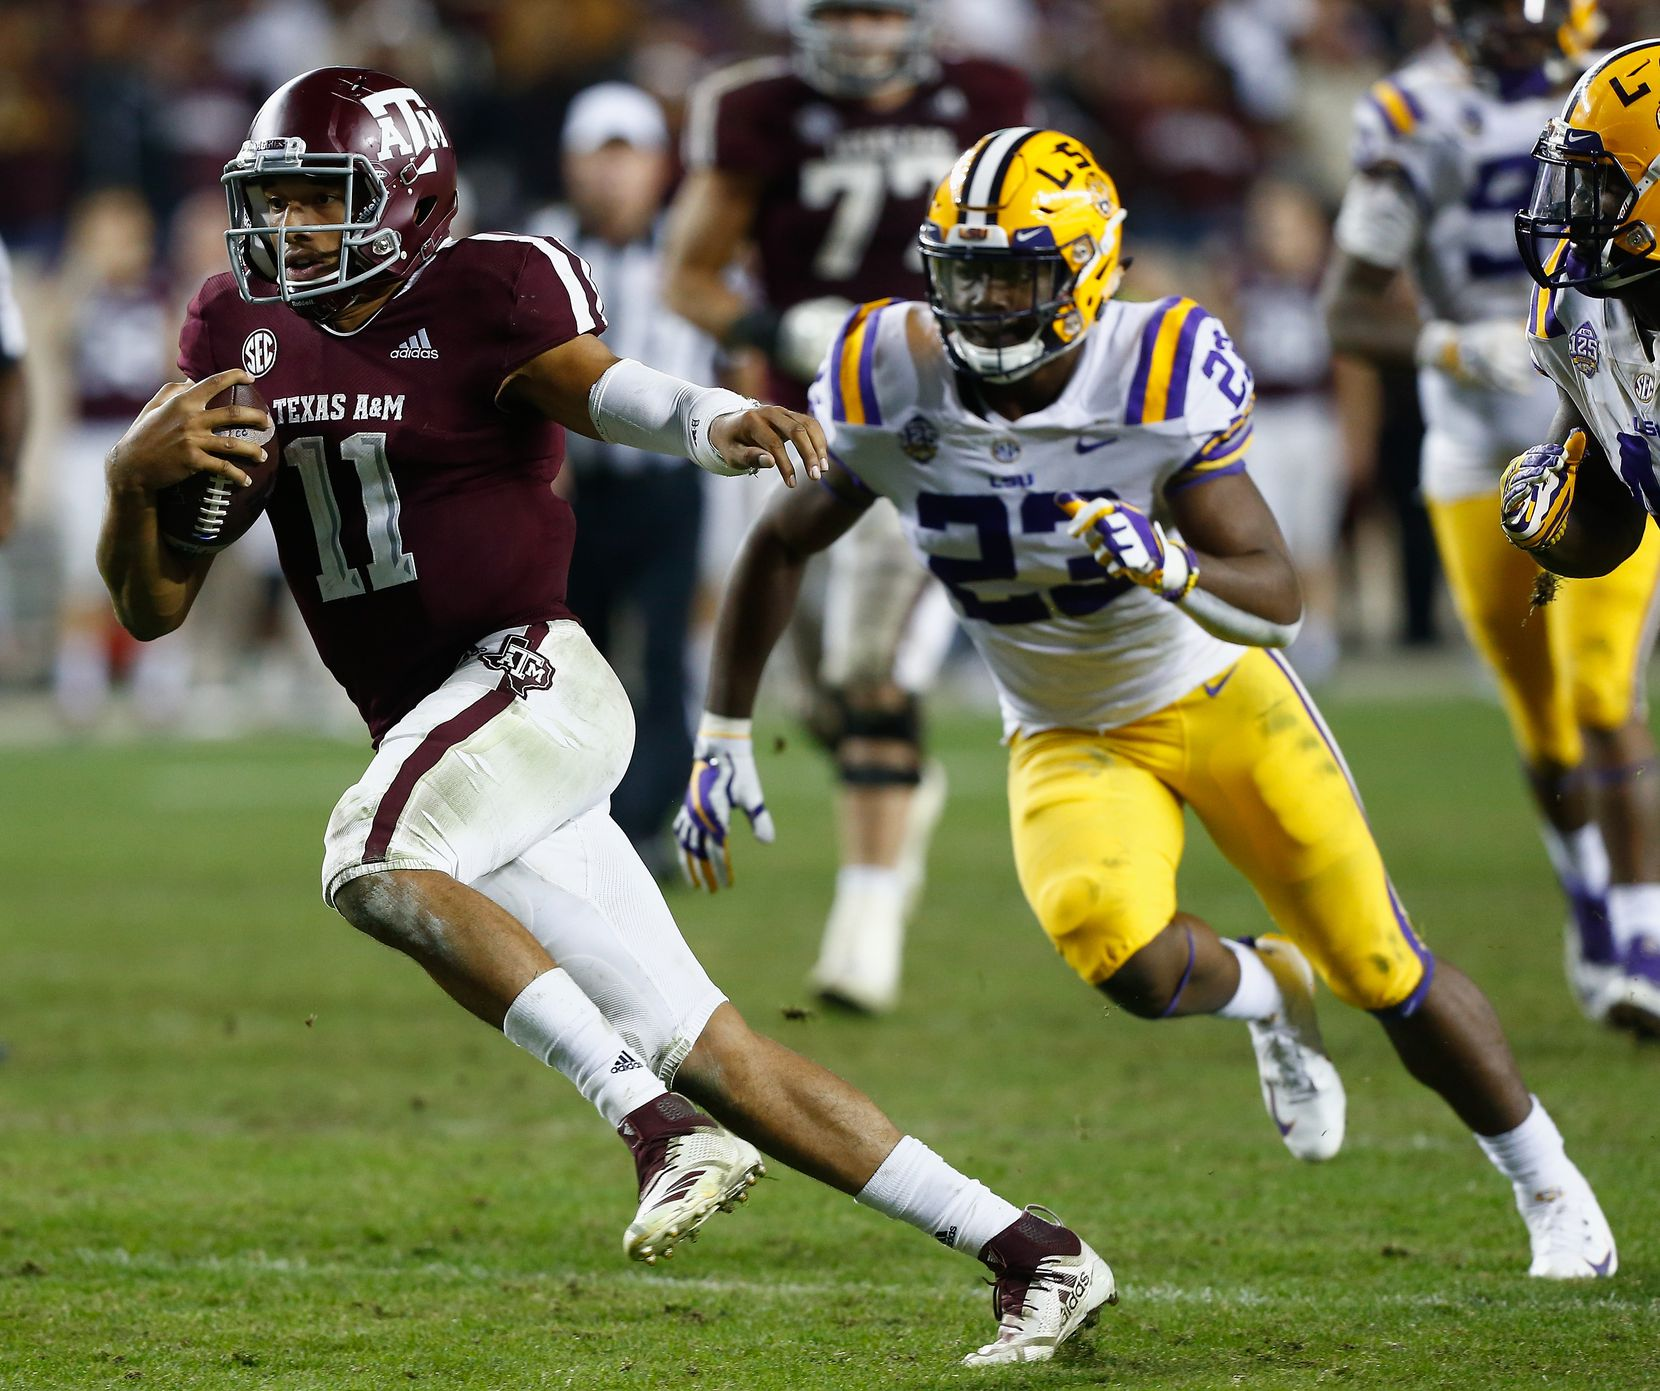 COLLEGE STATION, TEXAS - NOVEMBER 24: Kellen Mond #11 of the Texas A&M Aggies rushes past Micah Baskerville #23 of the LSU Tigers in overtime at Kyle Field on November 24, 2018 in College Station, Texas.